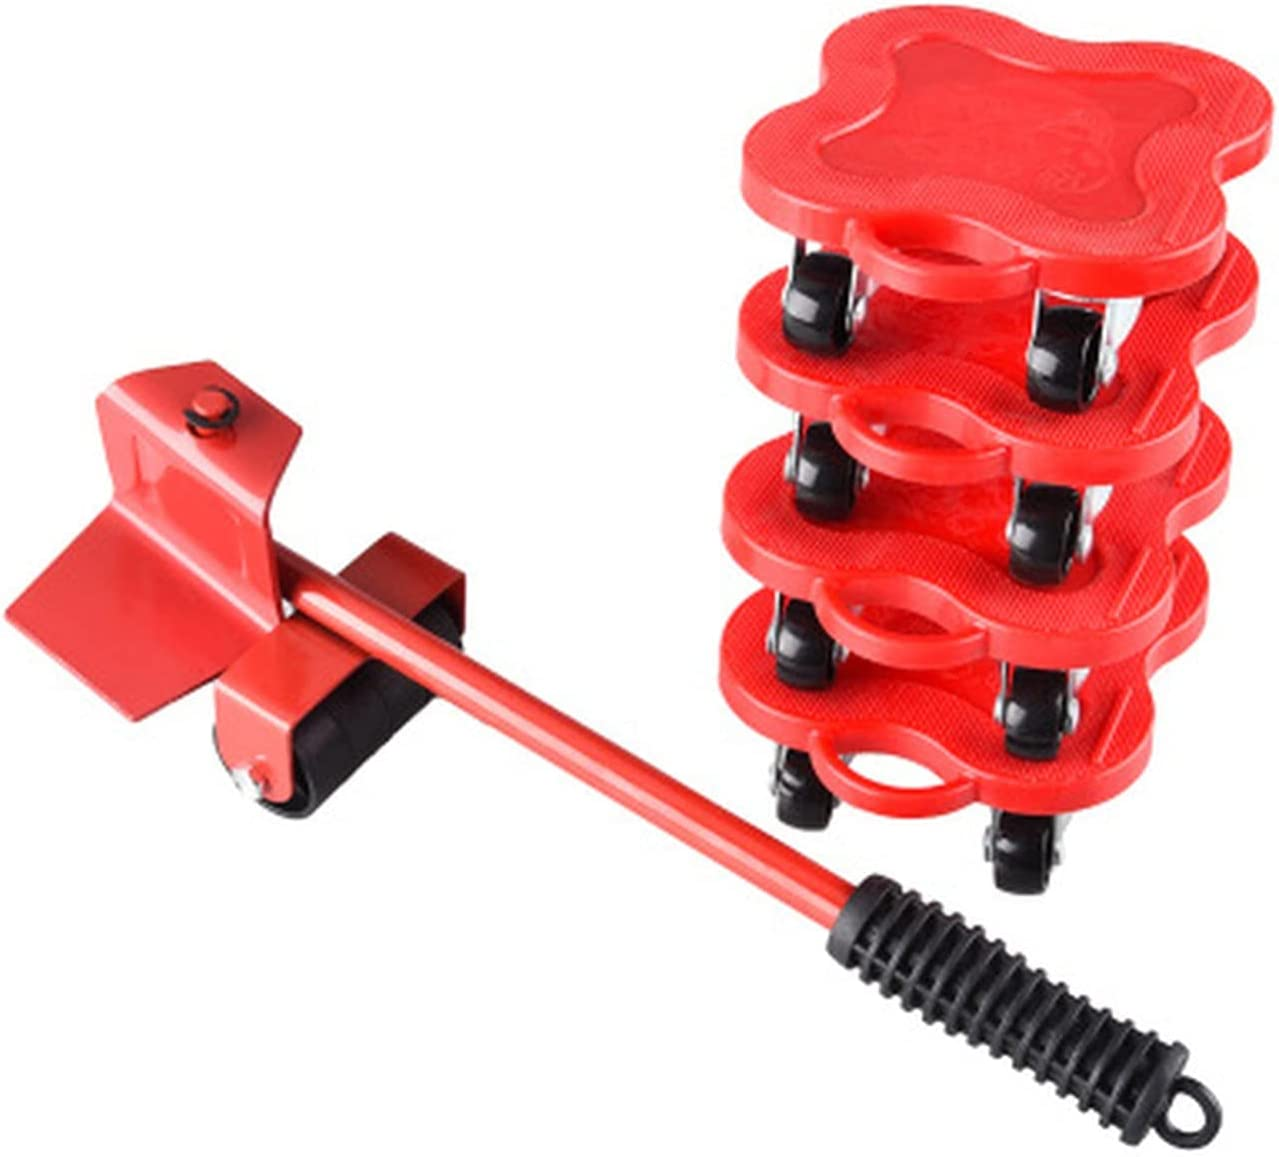 Popular product WWWFZS 5PCS Portable Furniture Mover Transport Kit H Super sale period limited Tool Lifter